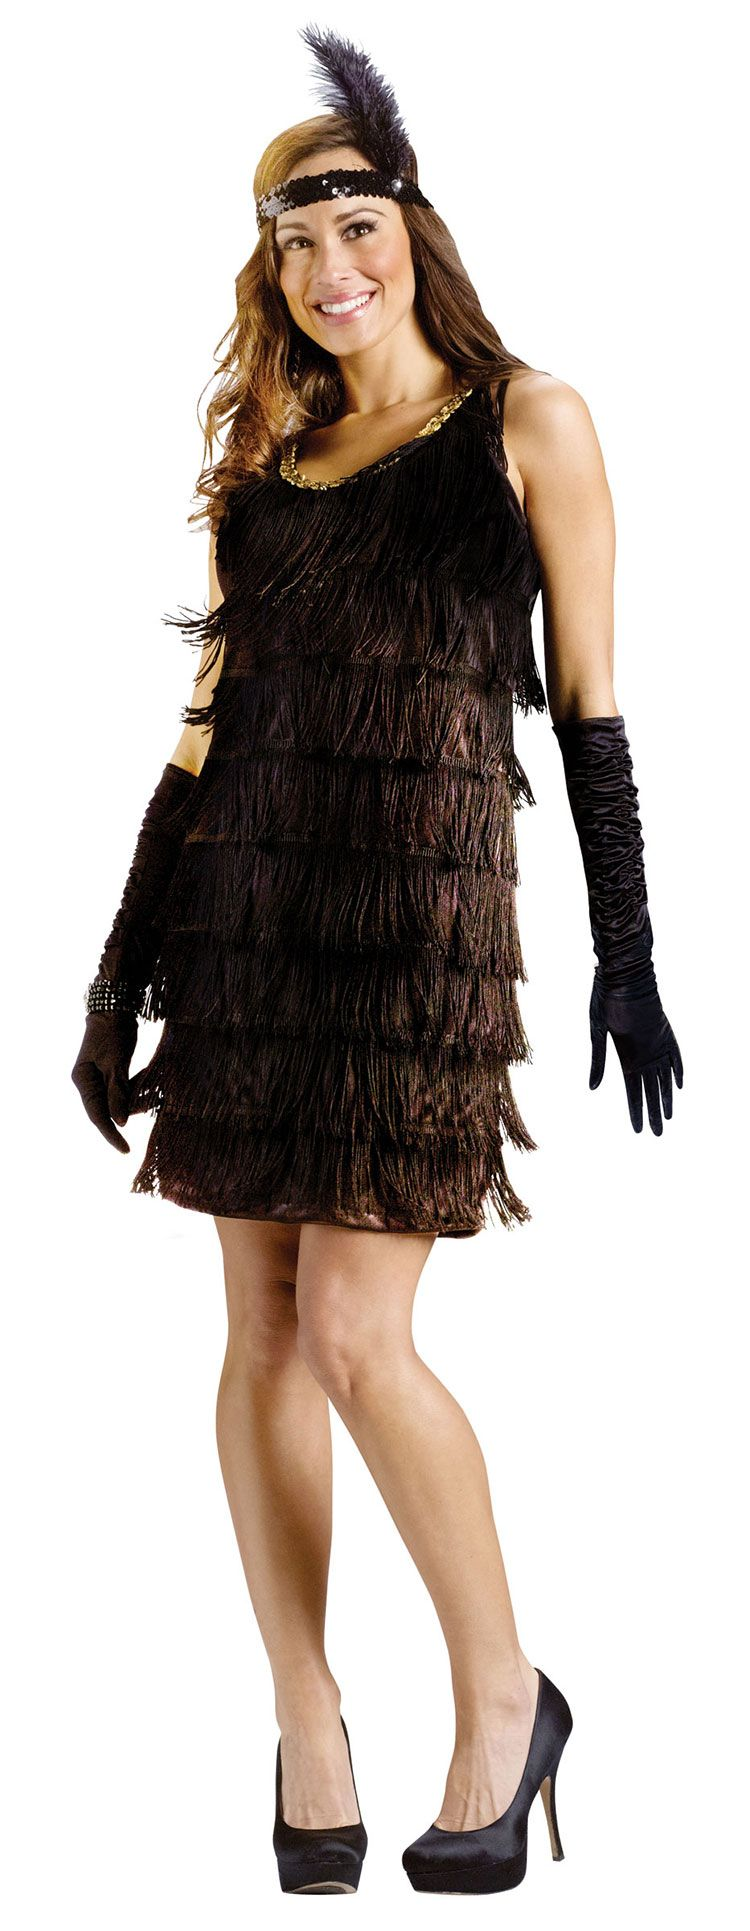 Black Fringed Flapper Costume - Flapper Costumes | 20s | Pinterest ...